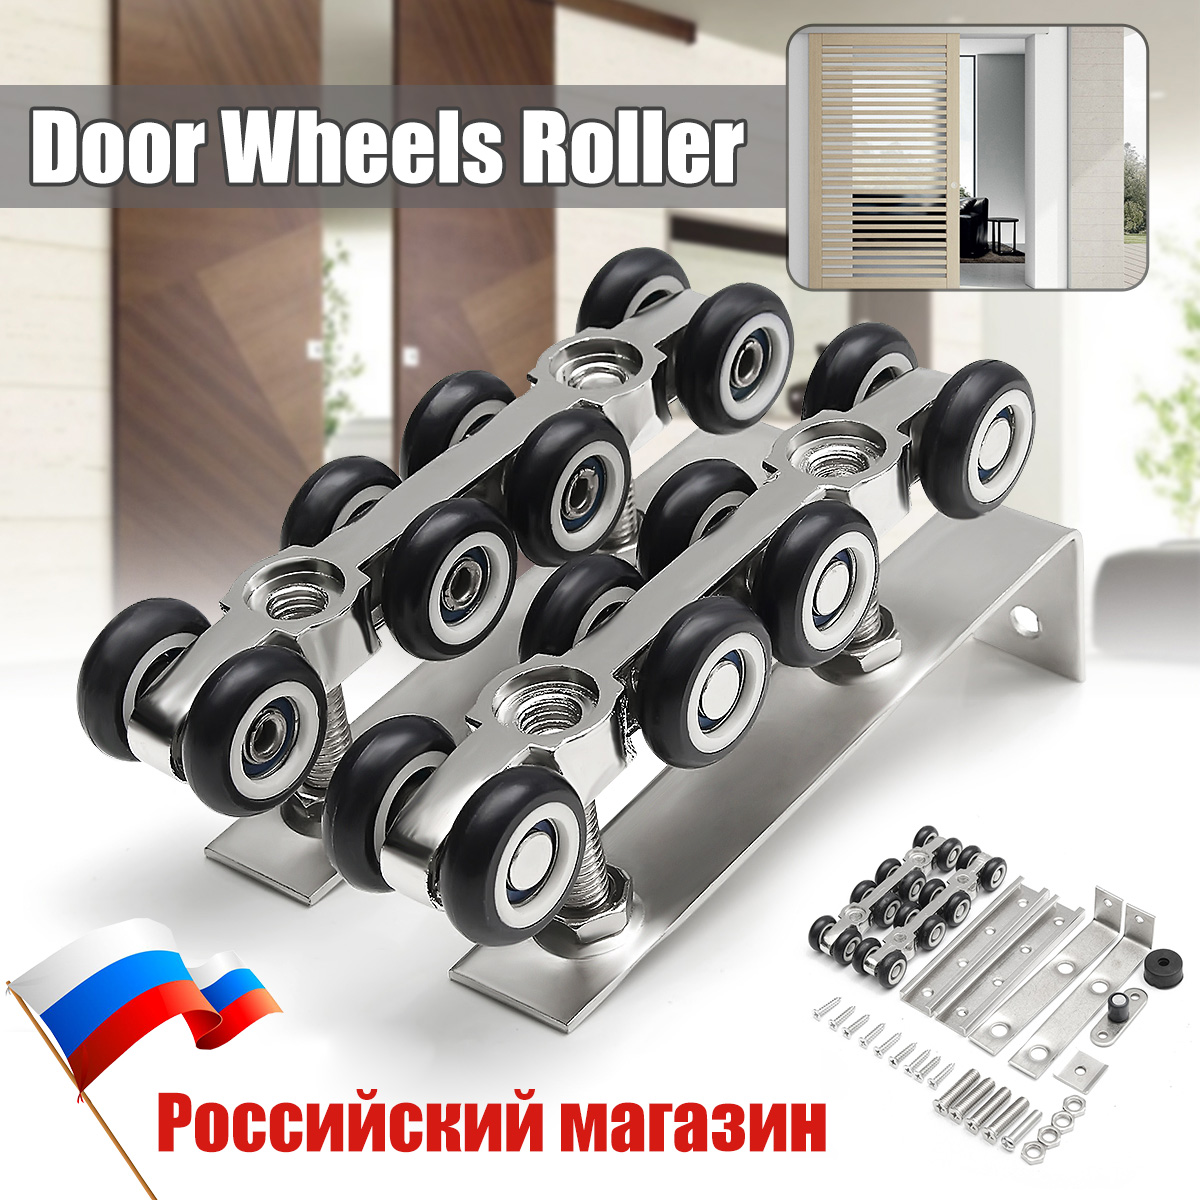 MTGATHER 1 Pair/set Cold Rolled Steel Sliding Wooden Door Closet Hardware Kit 8 Wheels Hangers Roller Cold Rolled Steel